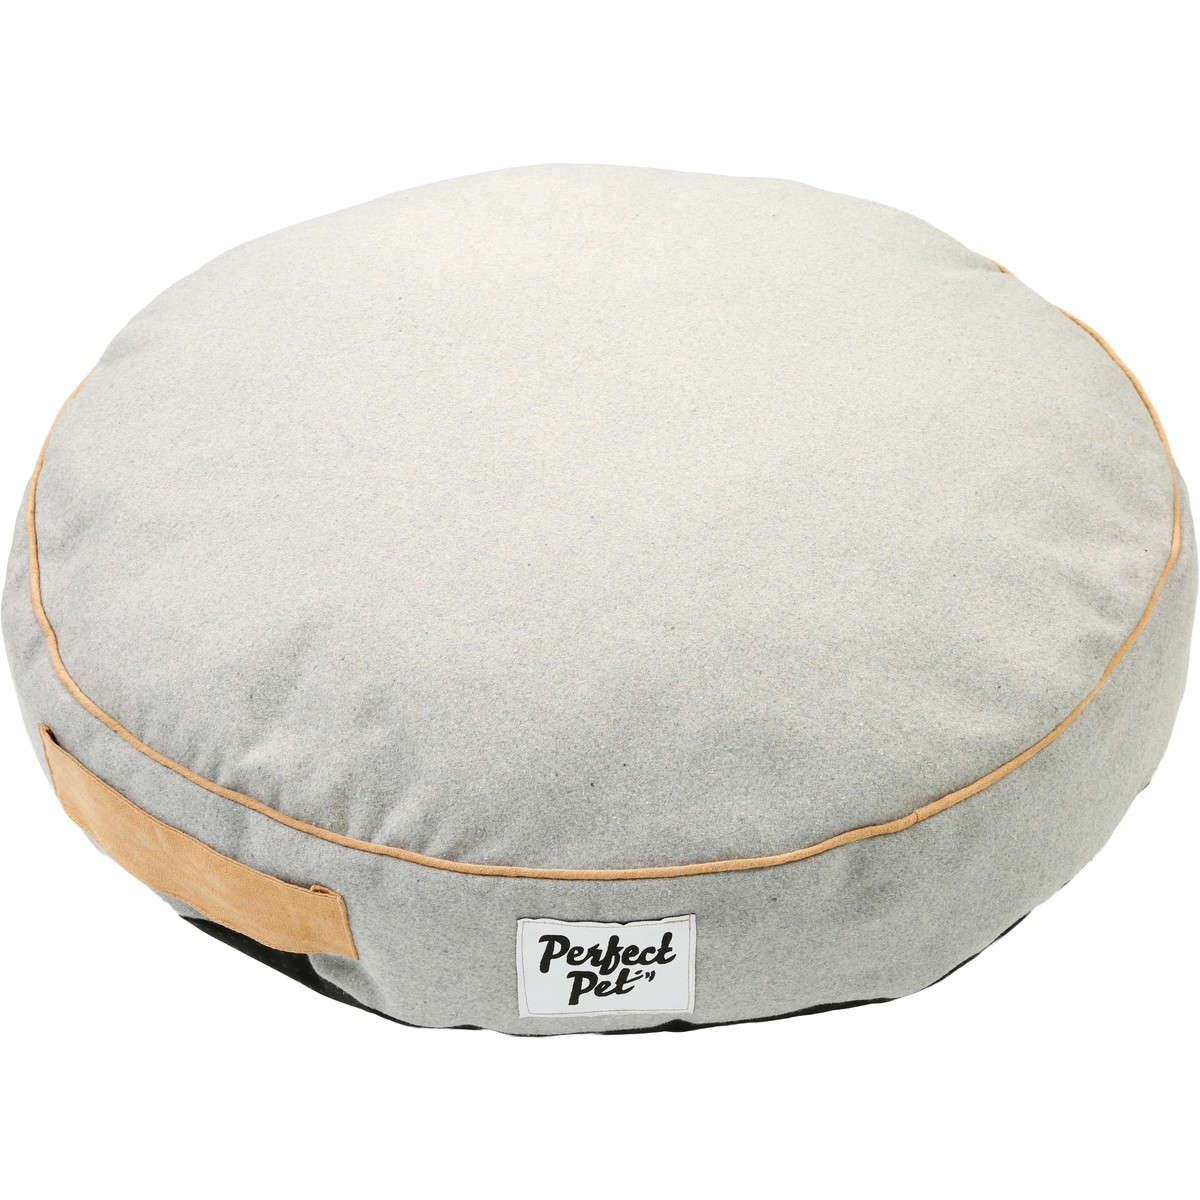 Big W Bed Perfect Pet Large Round Pillow Pet Bed Grey Big W